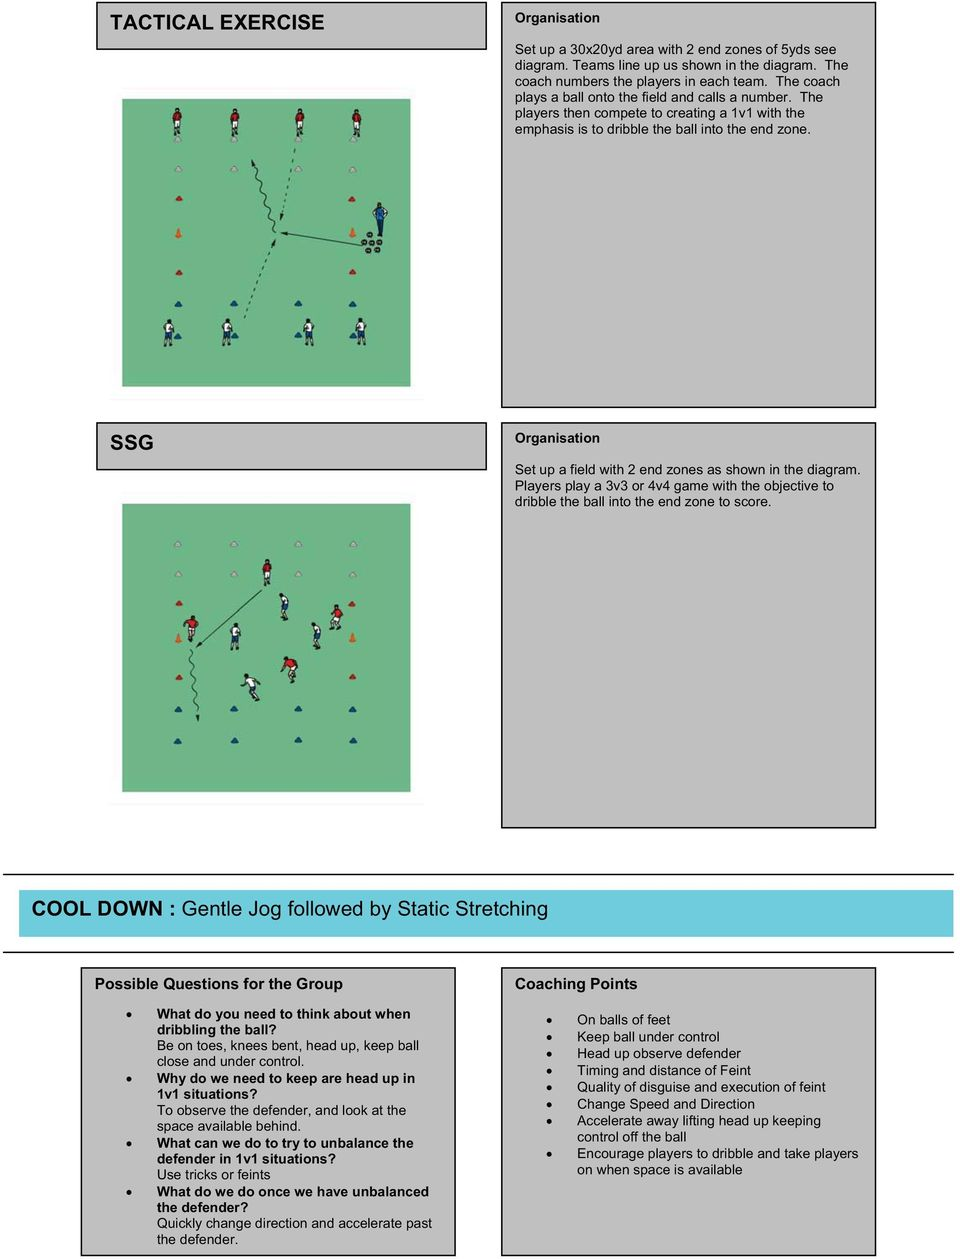 SSG Set up a field with 2 end zones as shown in the diagram. Players play a 3v3 or 4v4 game with the objective to dribble the ball into the end zone to score.